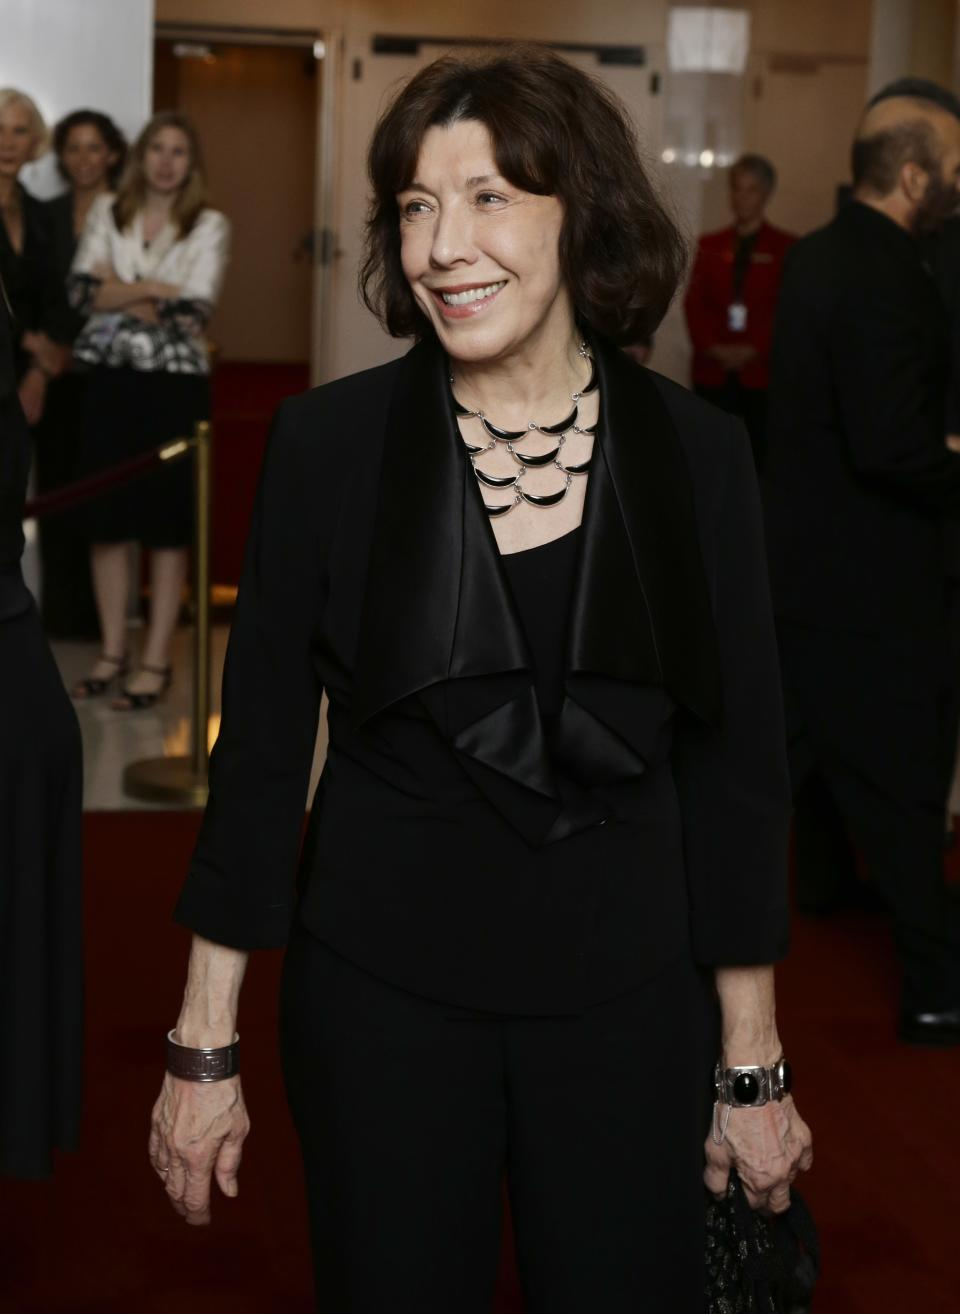 Actress Lily Tomlin poses for photographers on the red carpet before entertainer Ellen DeGeneres receives the 15th annual Mark Twain Prize for American Humor at the Kennedy Center, Monday, Oct. 22, 2012, in Washington. (AP Photo/Alex Brandon)